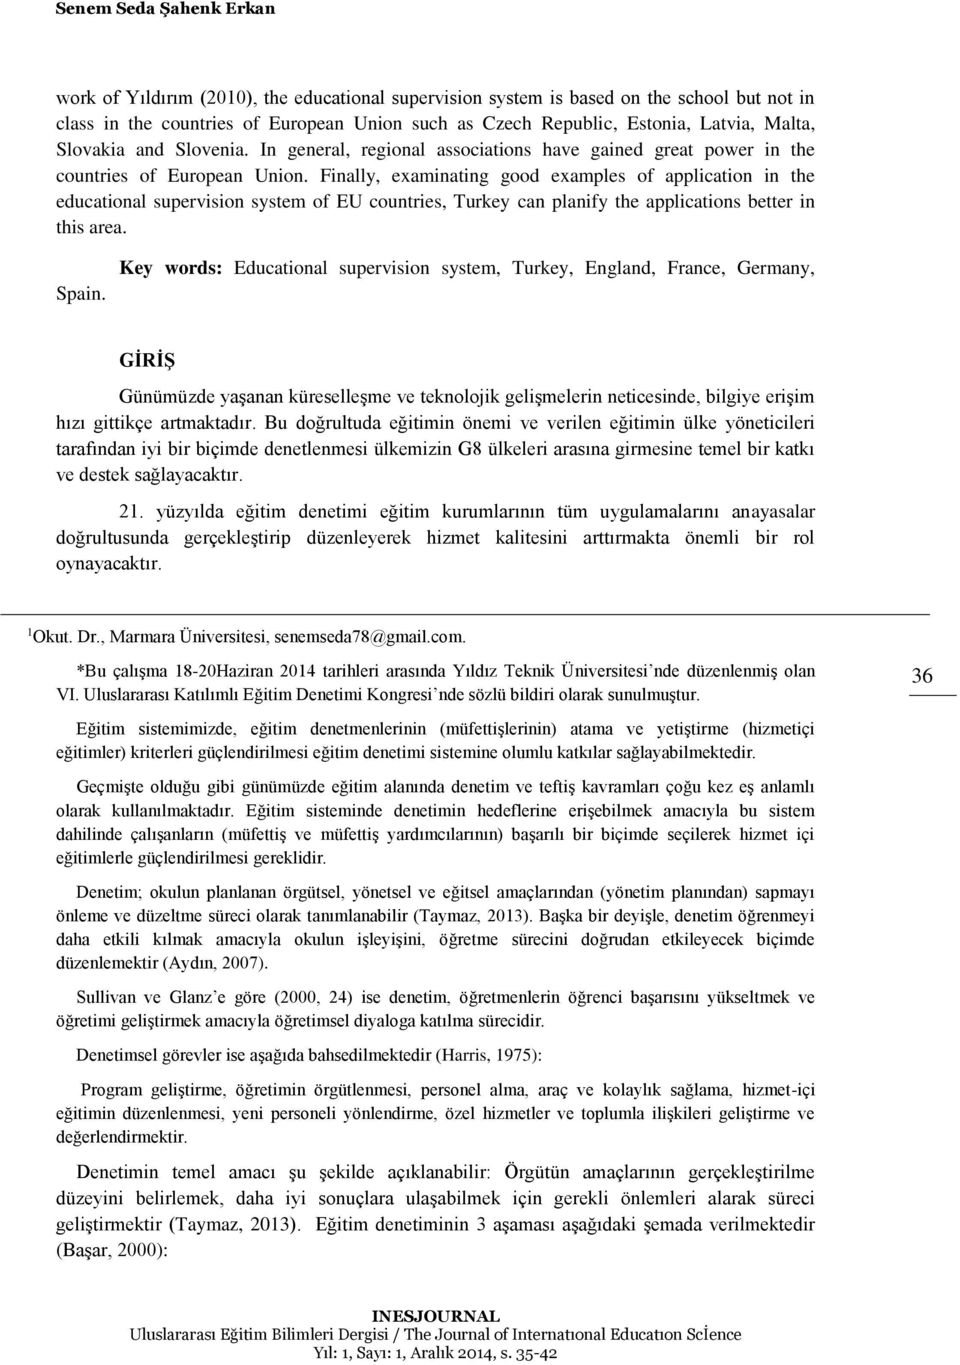 Finally, examinating good examples of application in the educational supervision system of EU countries, Turkey can planify the applications better in this area. Spain.